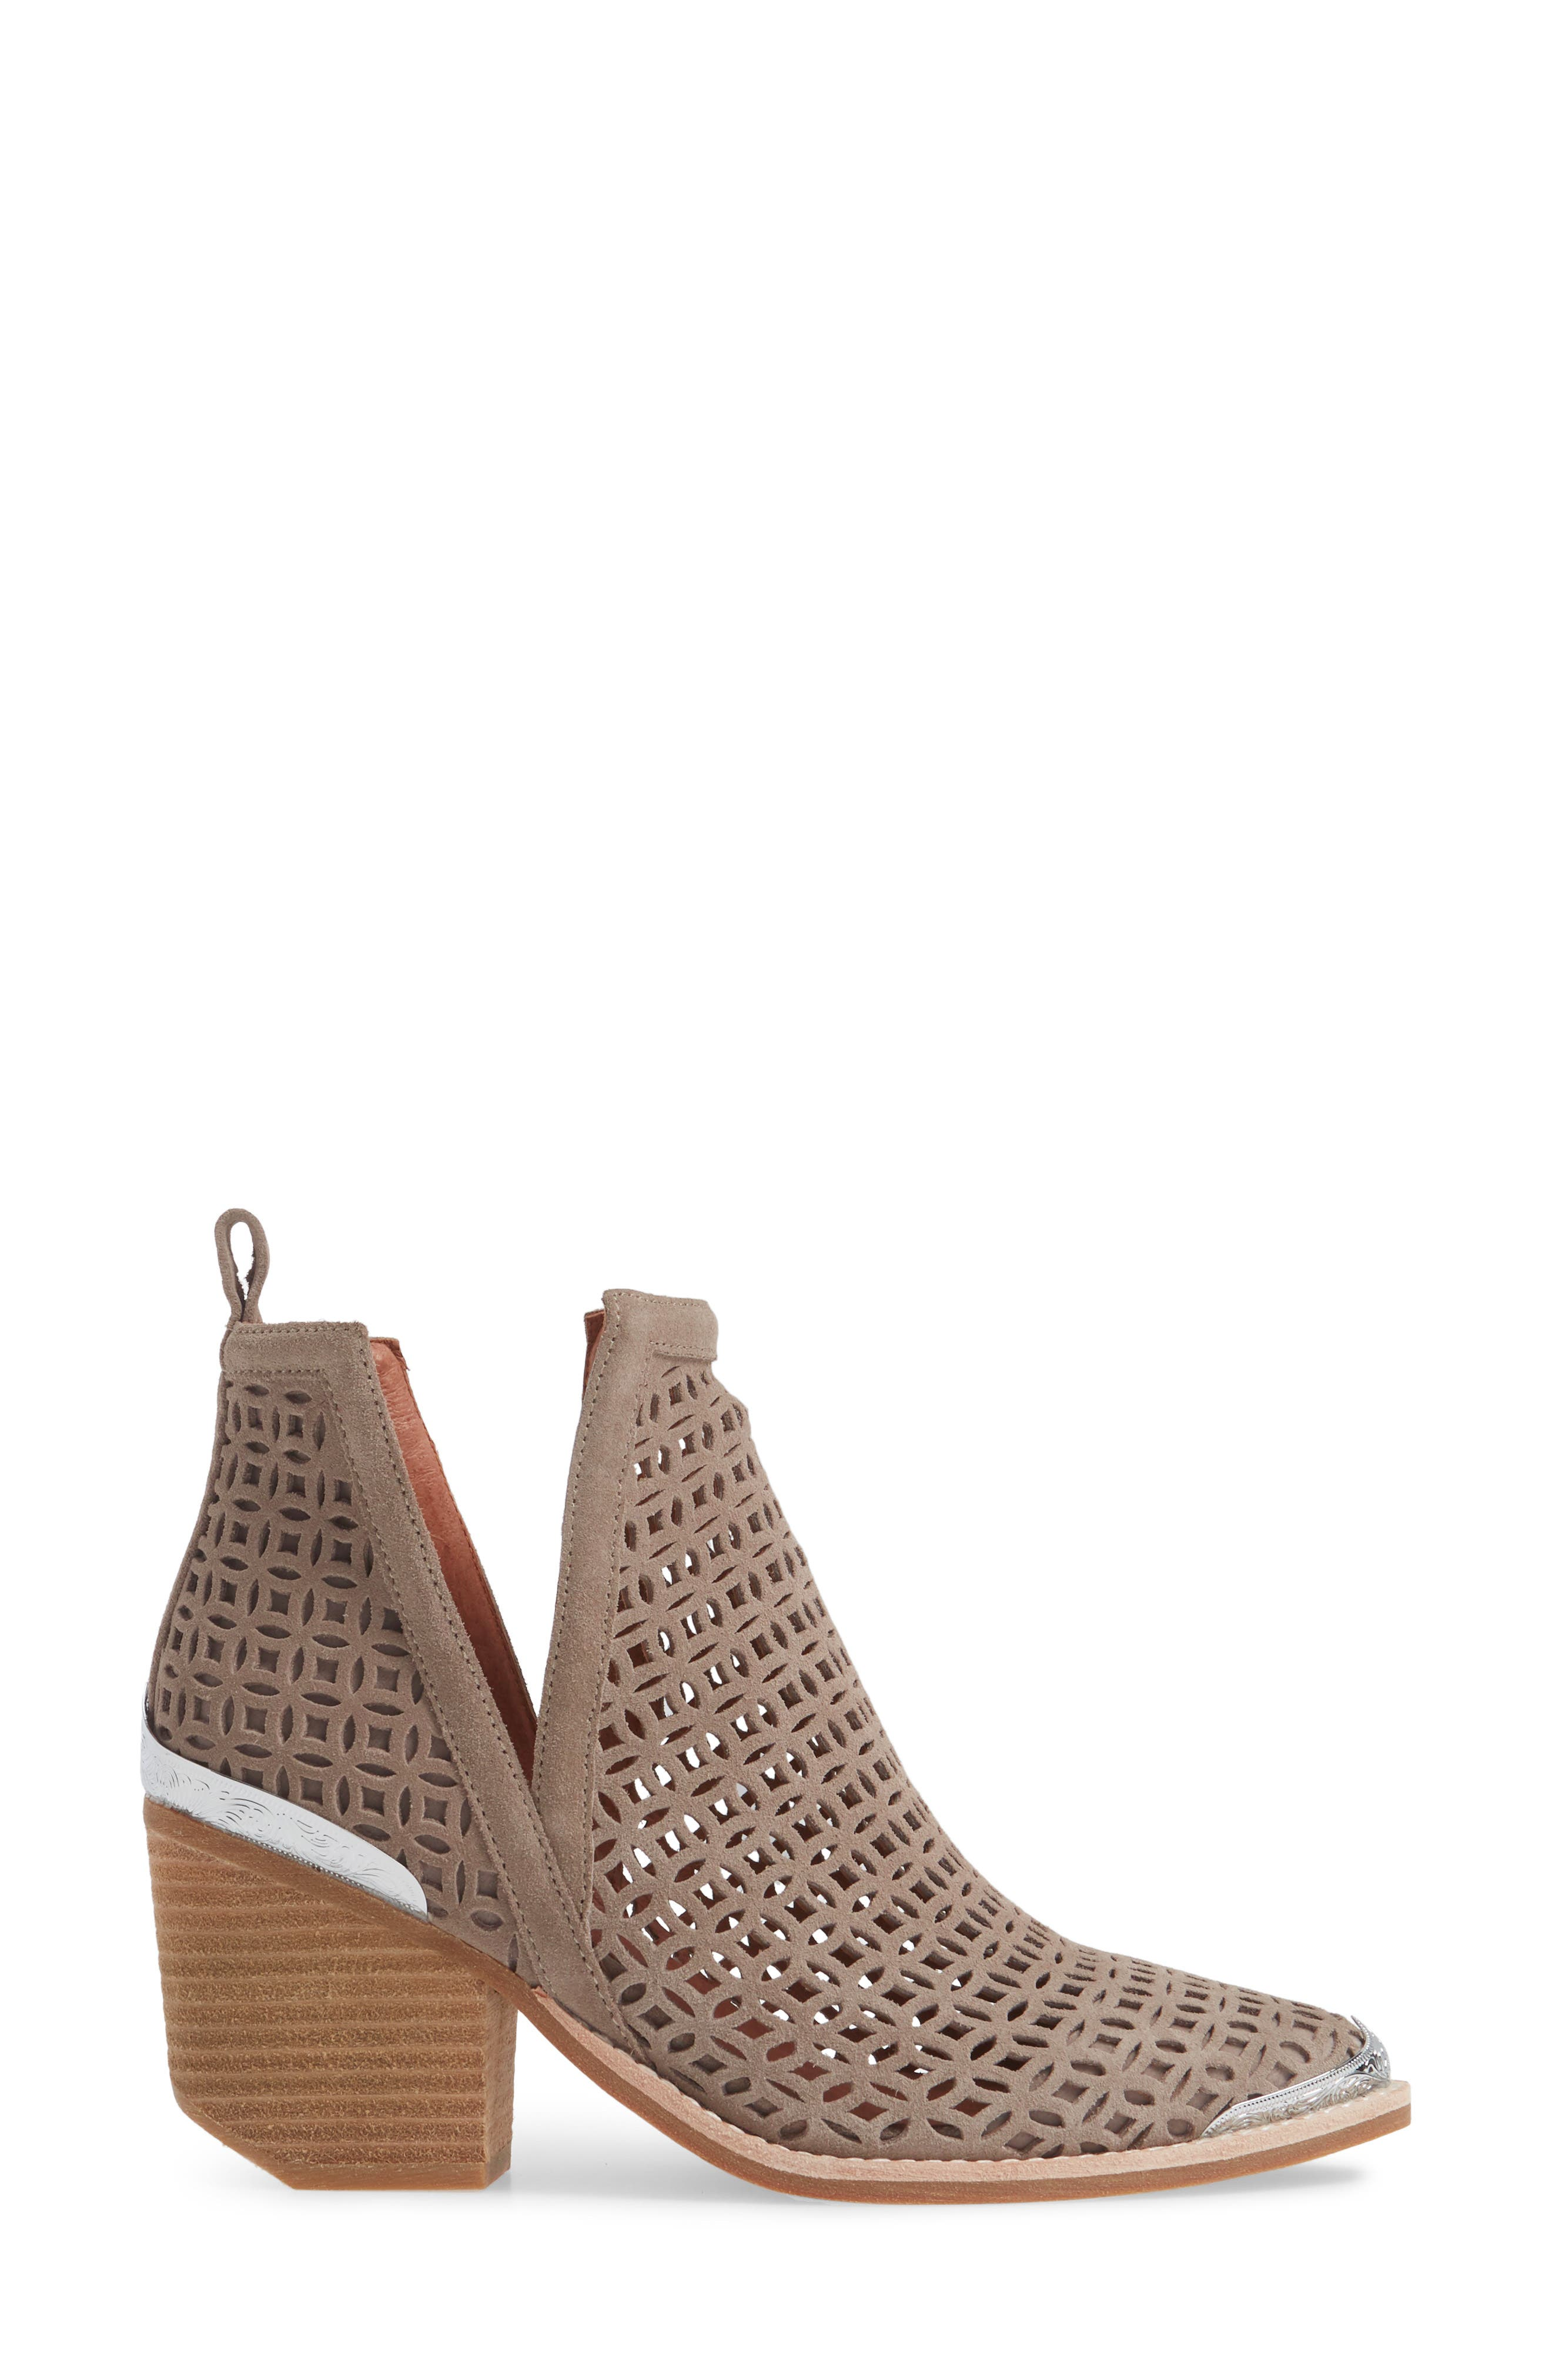 JEFFREY CAMPBELL, Cromwell-C2 Perforated Bootie, Alternate thumbnail 3, color, TAUPE SUEDE